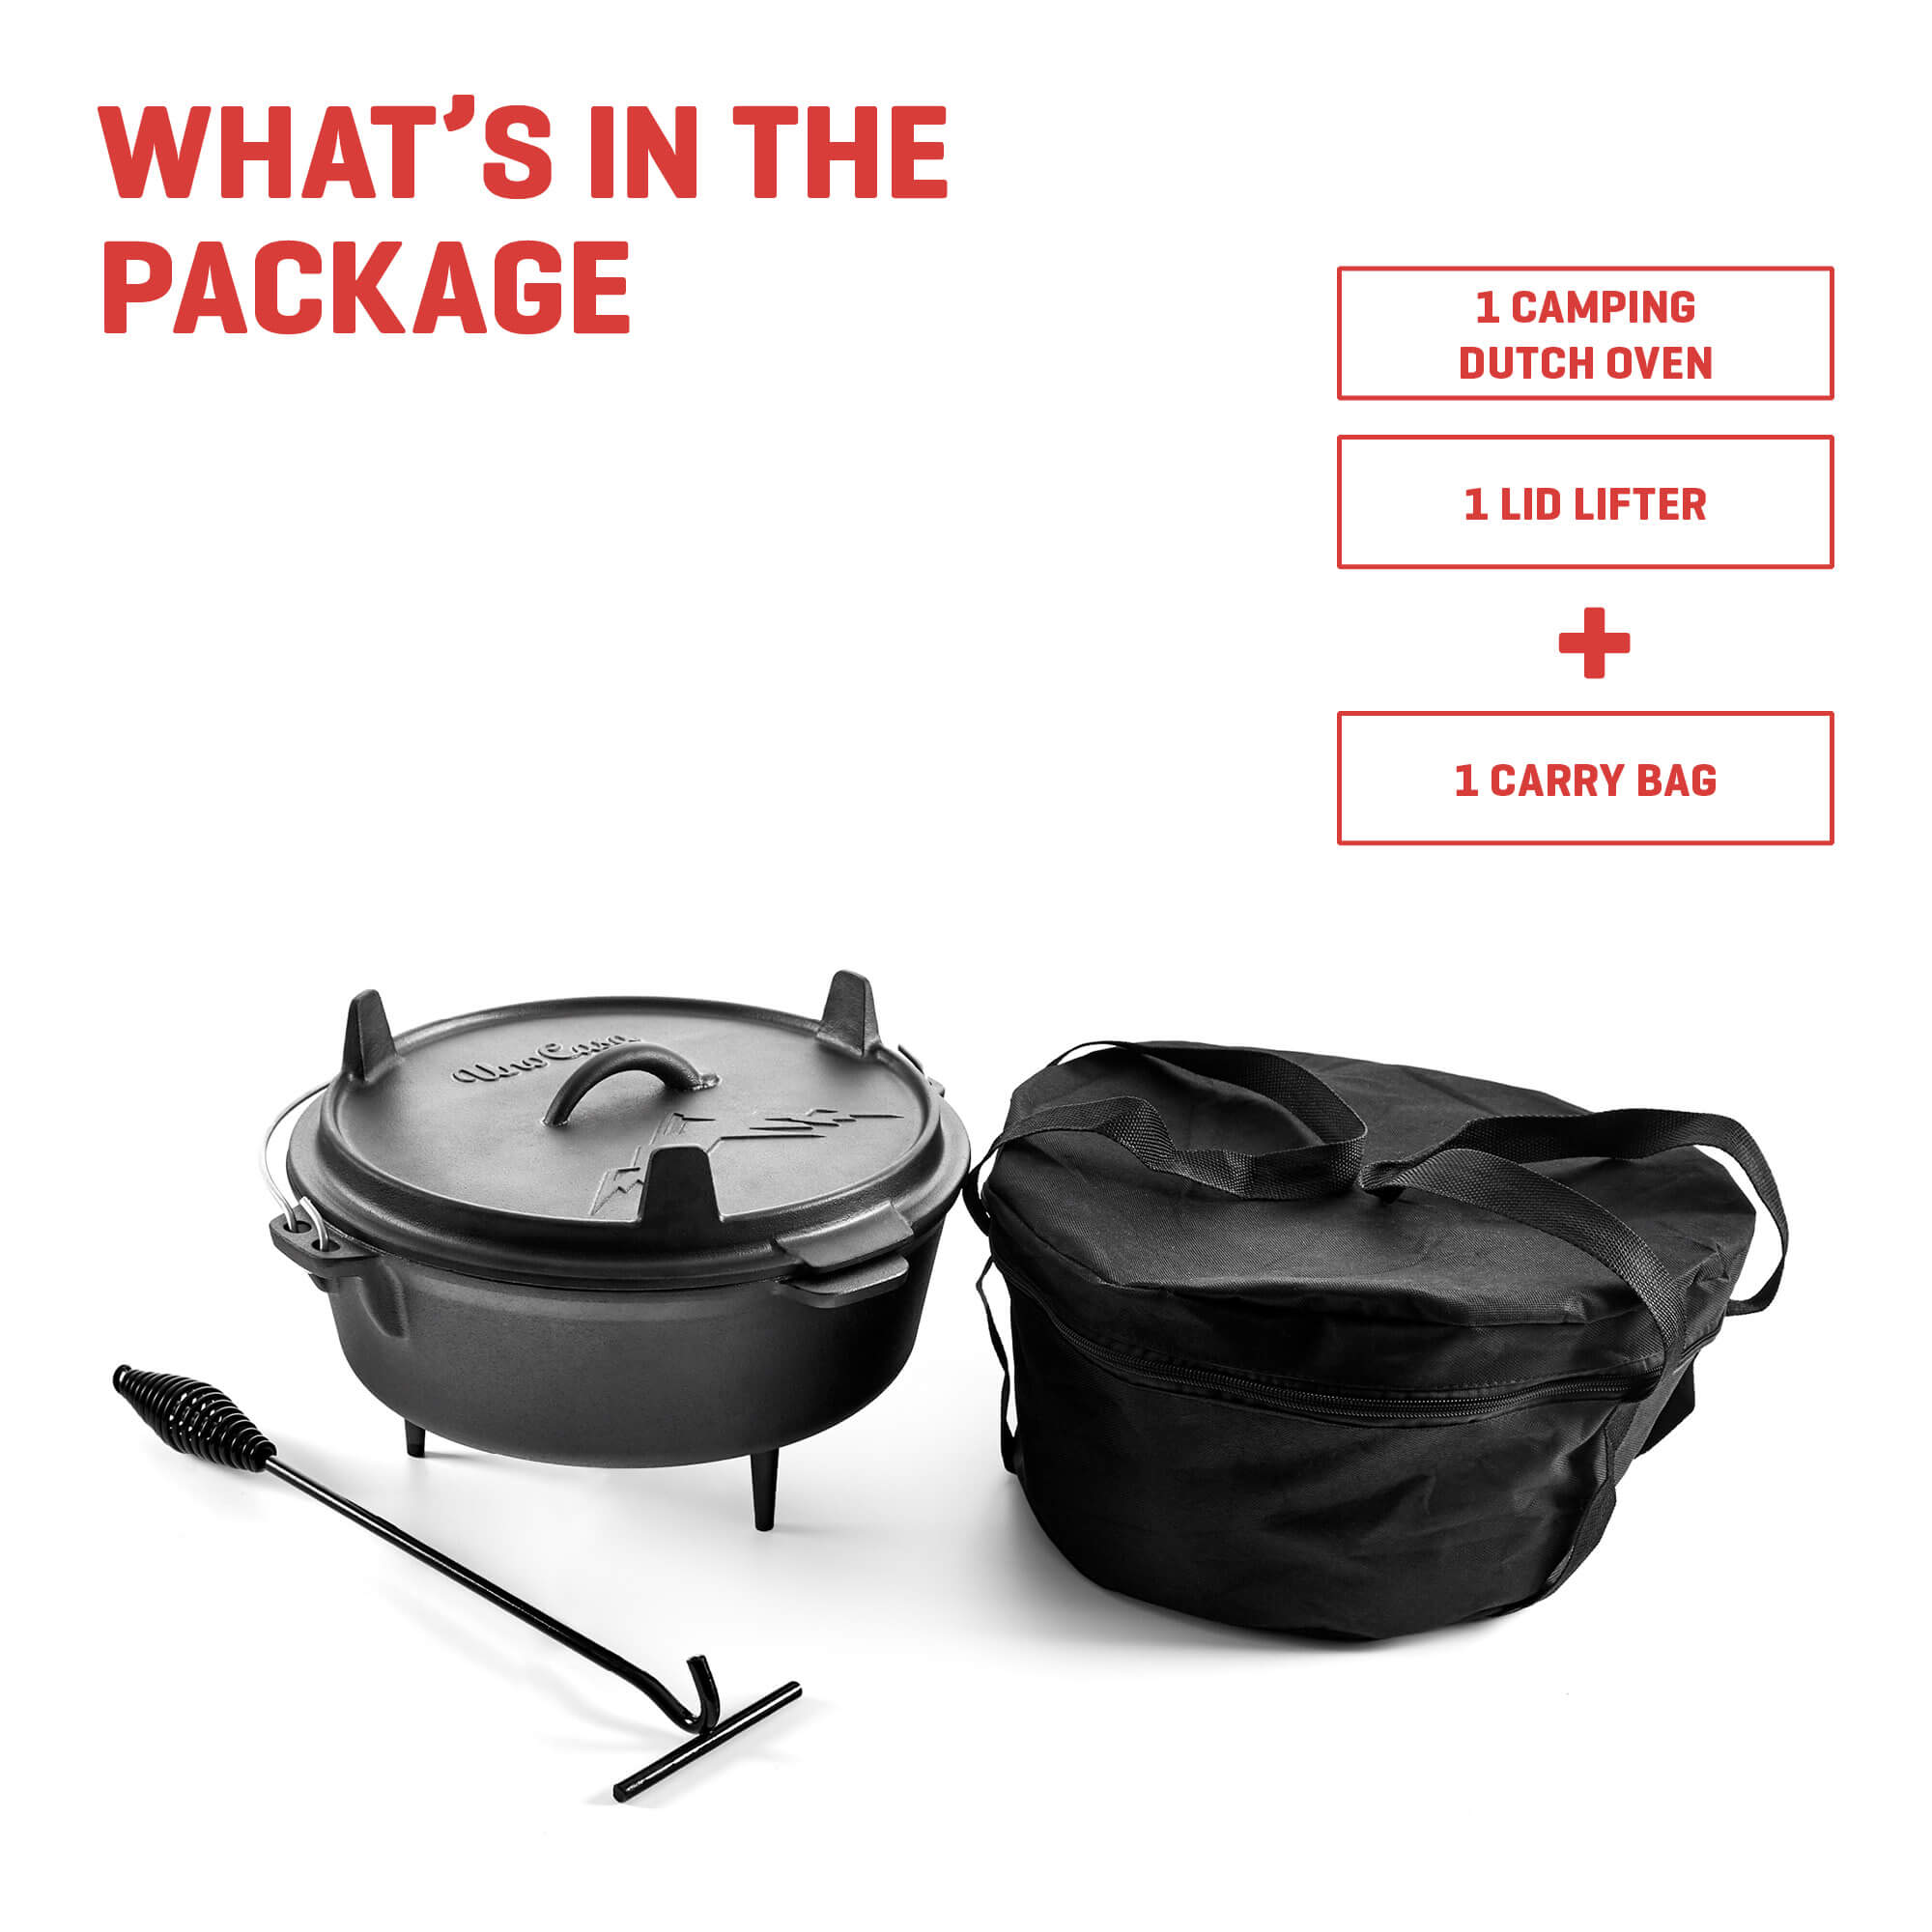 Camping Dutch Oven For Campfire Use Uno Casa